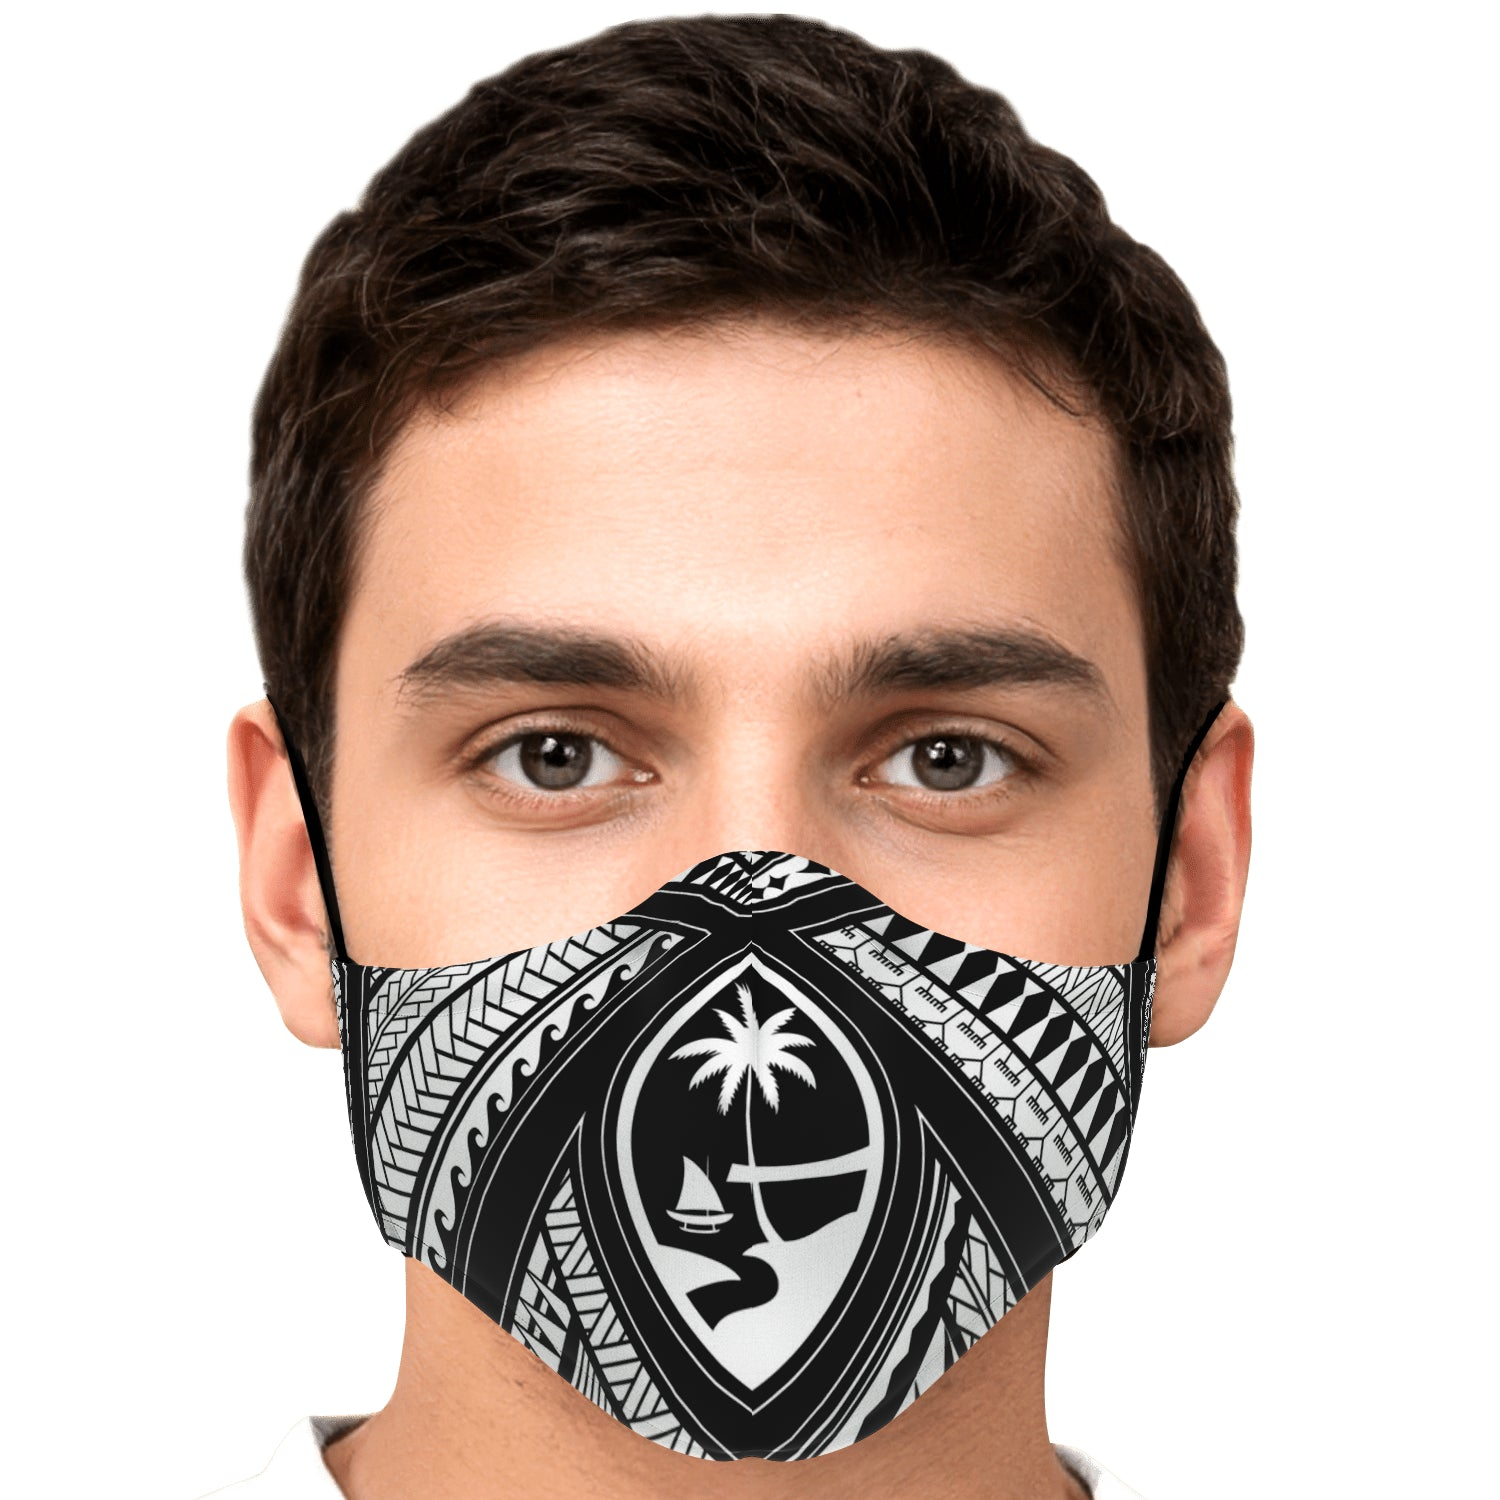 Guahan Tribal Face Mask for Youth and Adults